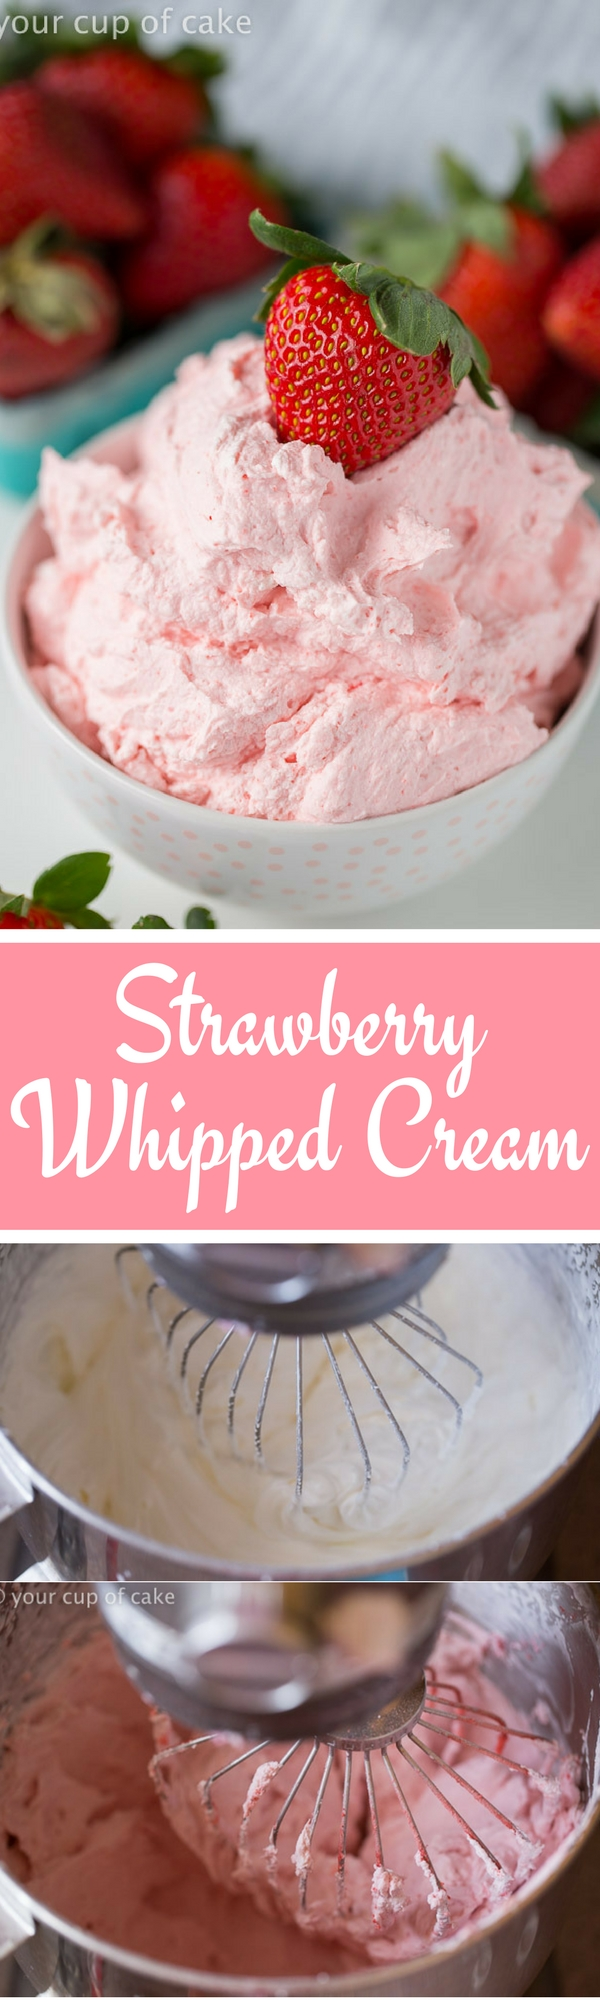 Strawberry Whipped Cream for dipping fruit or topping cupcakes!